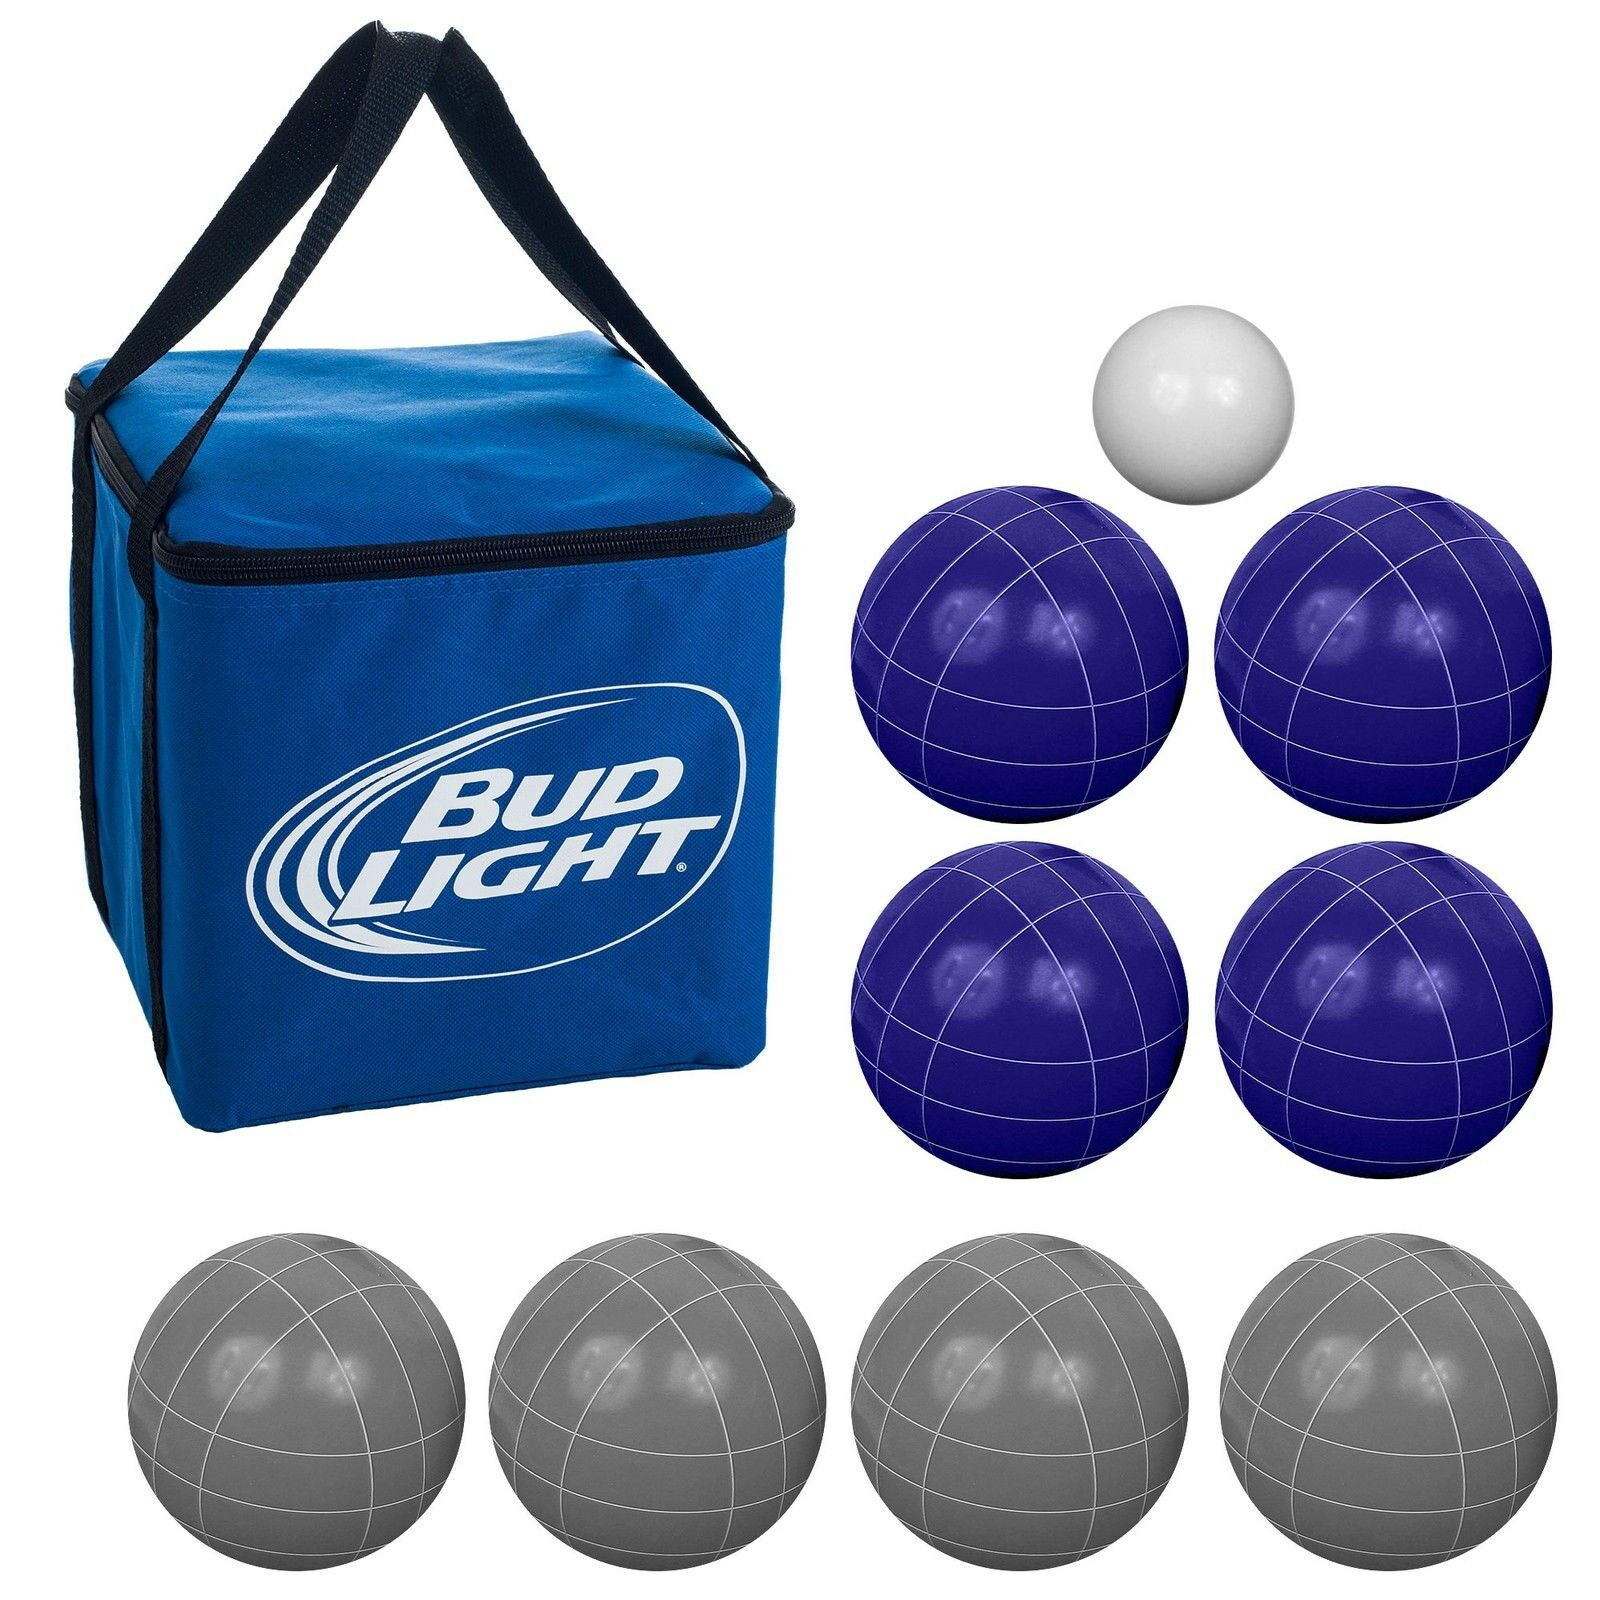 Bud  Light Bocce Ball Set - Regulation Size  100% price guarantee